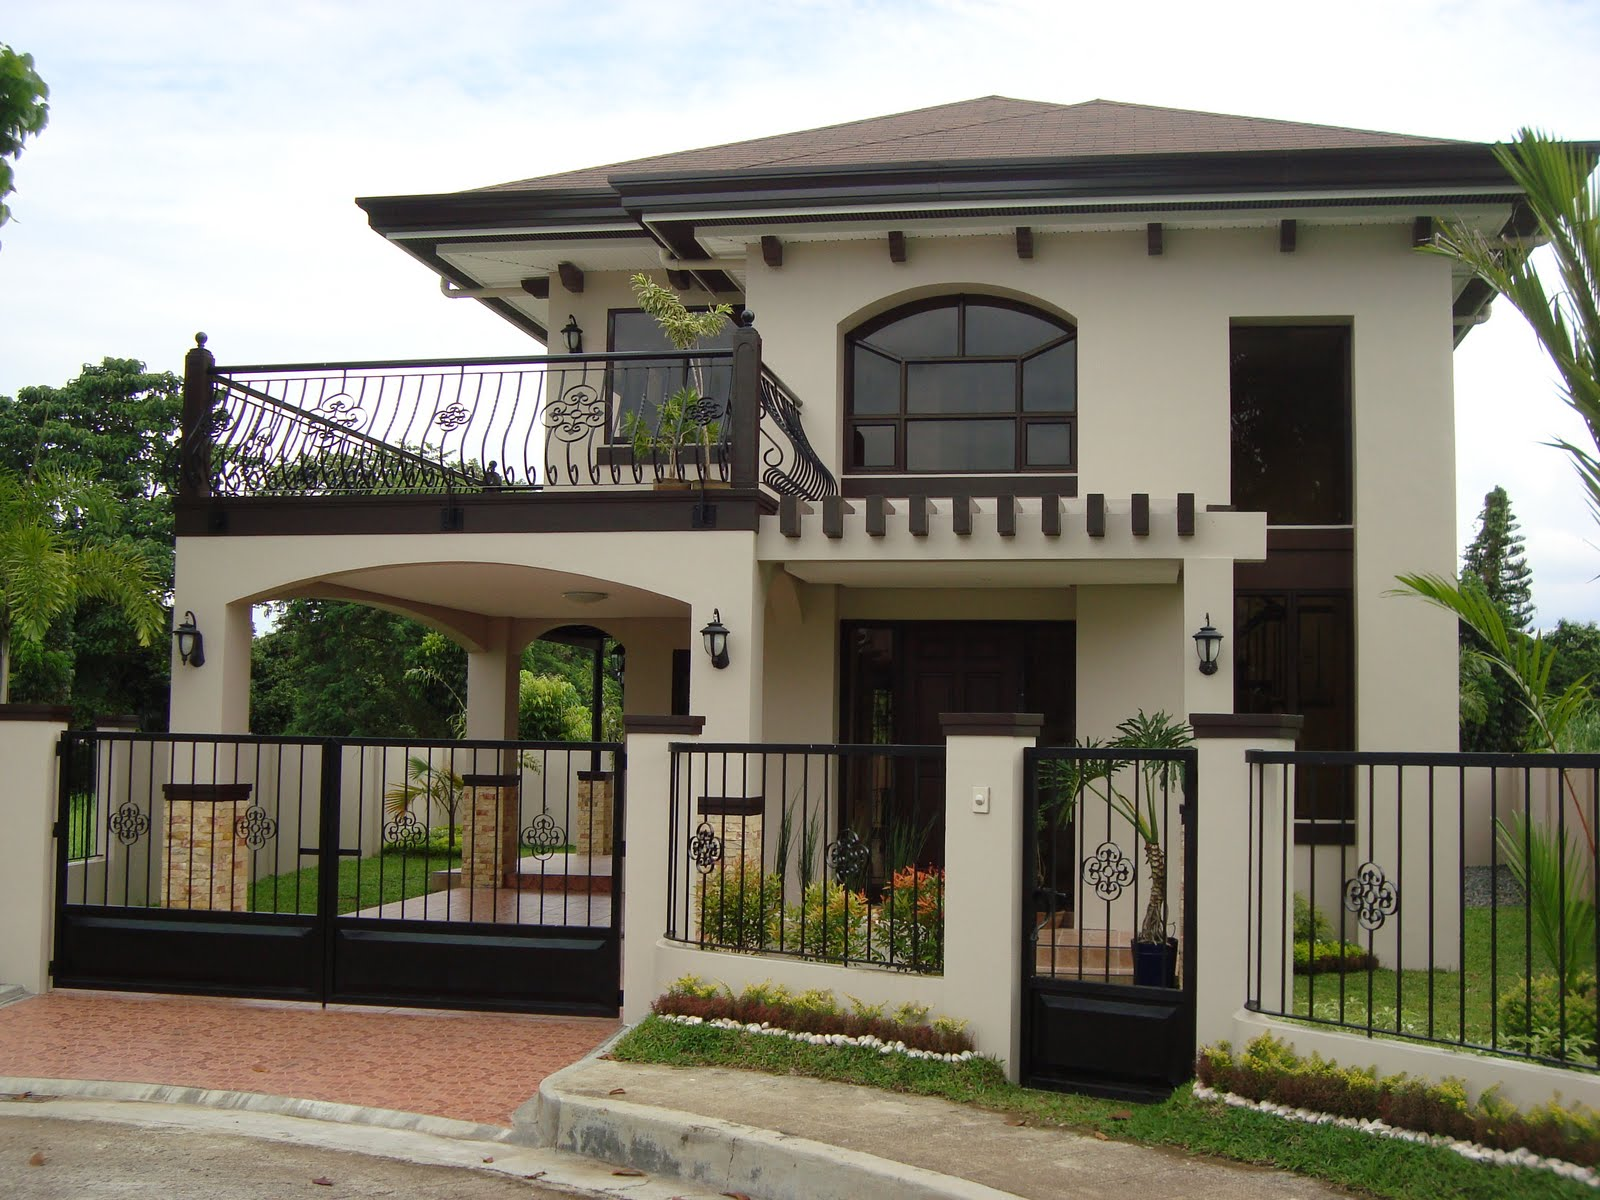 Tidbits of life 2 storey house mediterannian design for House design philippines 2 storey